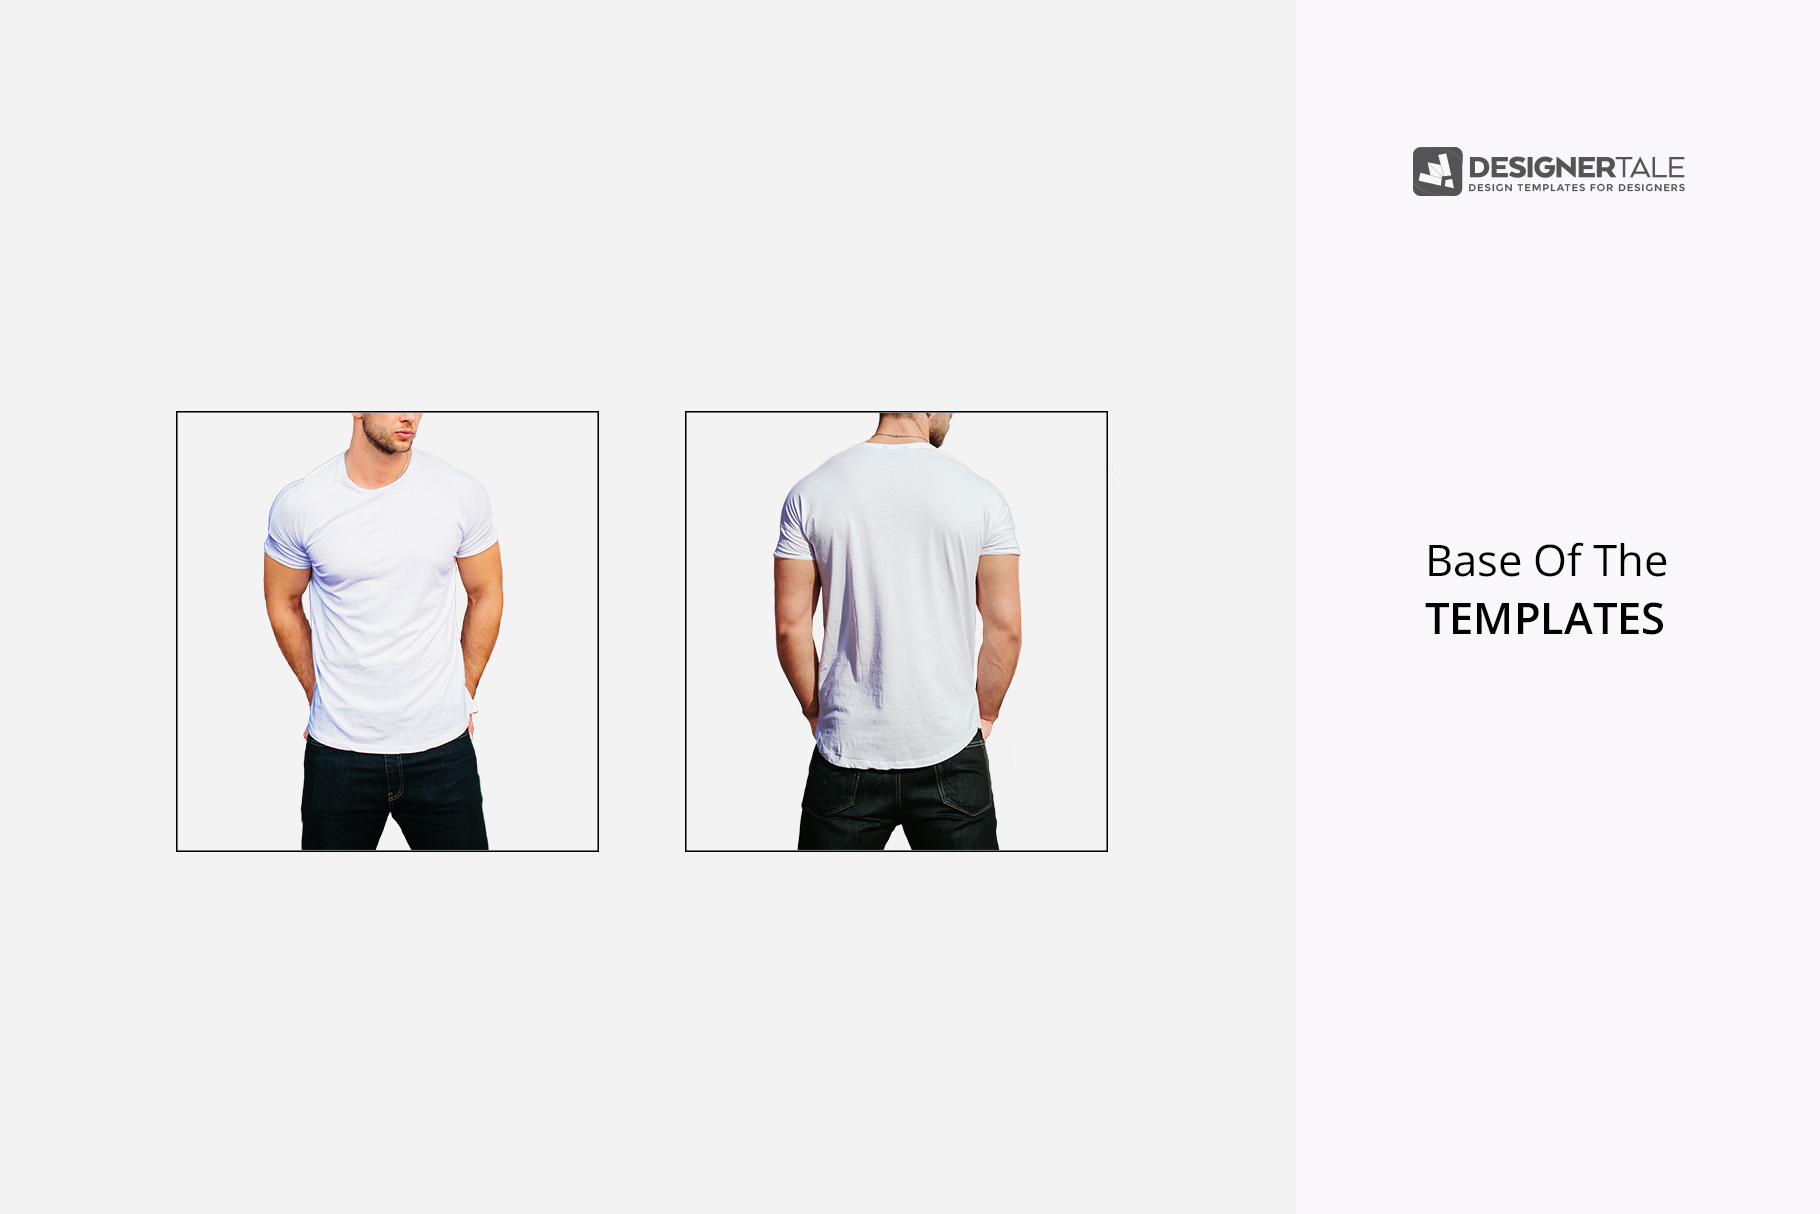 raw templates of round neck men t shirt mockup front and back side of the t shirts